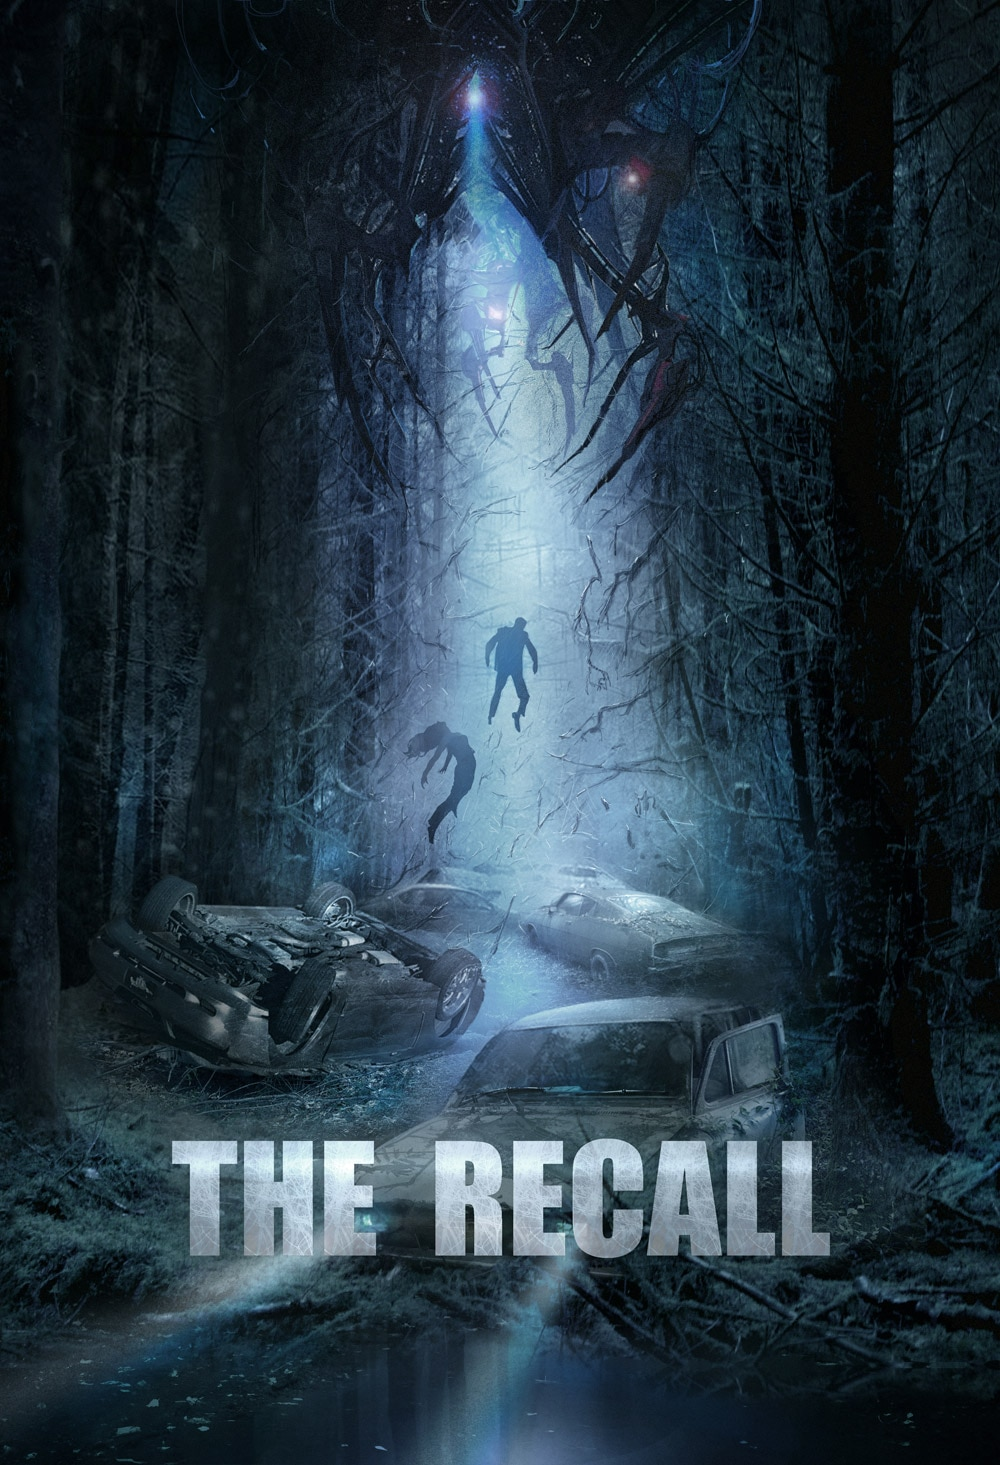 The Recall Poster - Wesley Snipes Beating Off Aliens in The Recall; Check Out the Poster